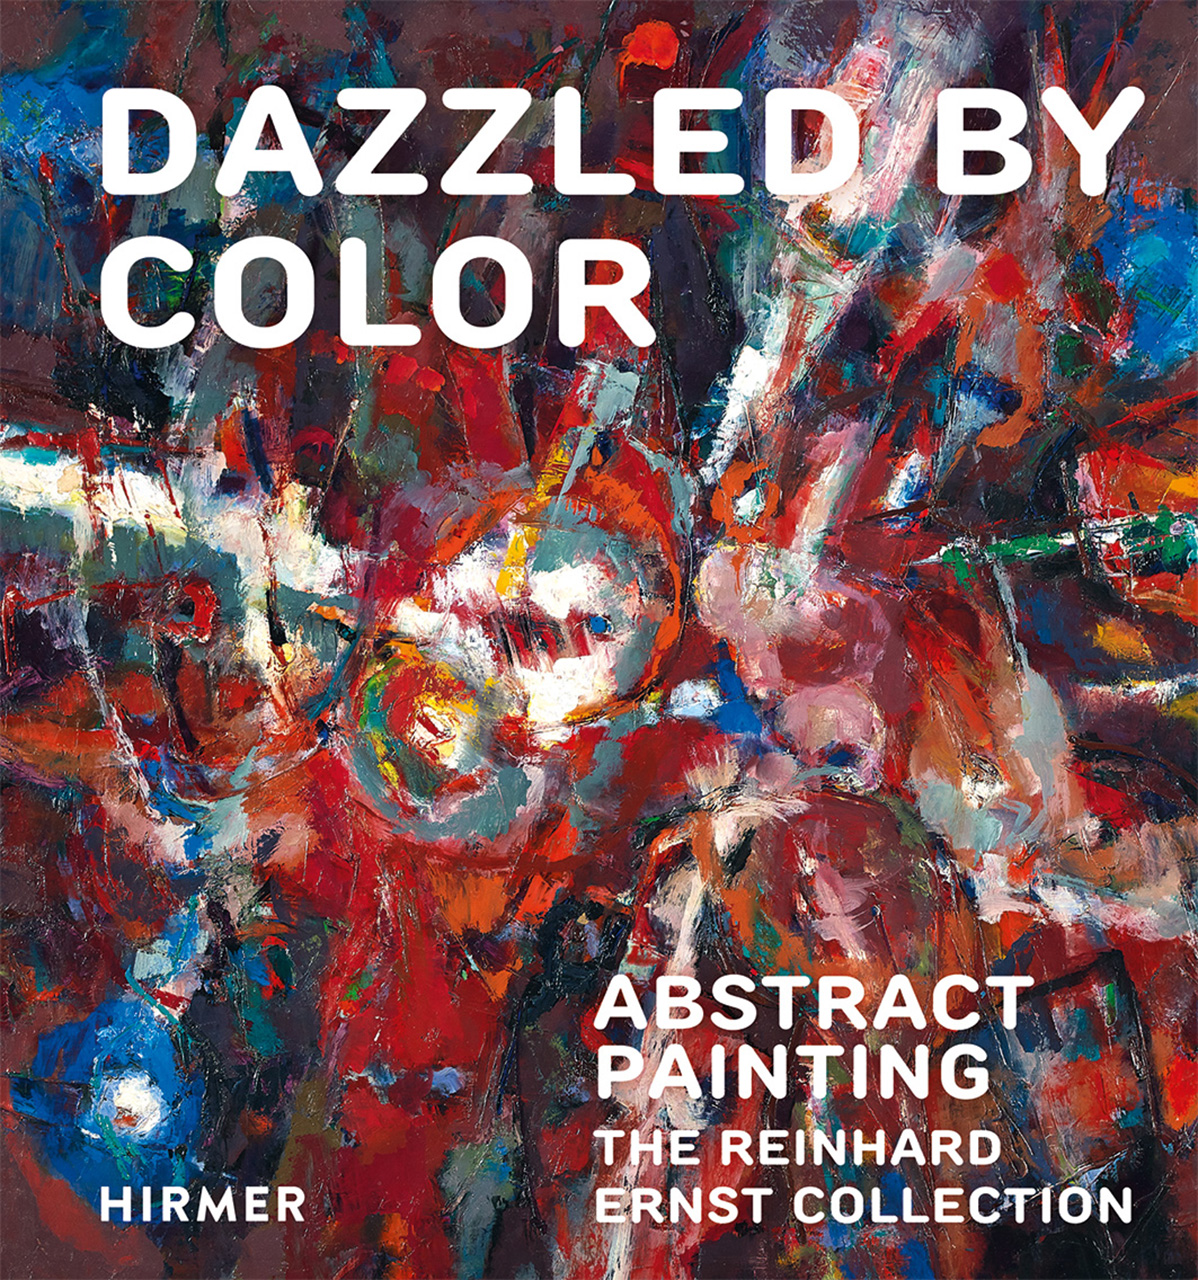 Dazzled by Color: Abstract Painting. The Reinhard Ernst Collection